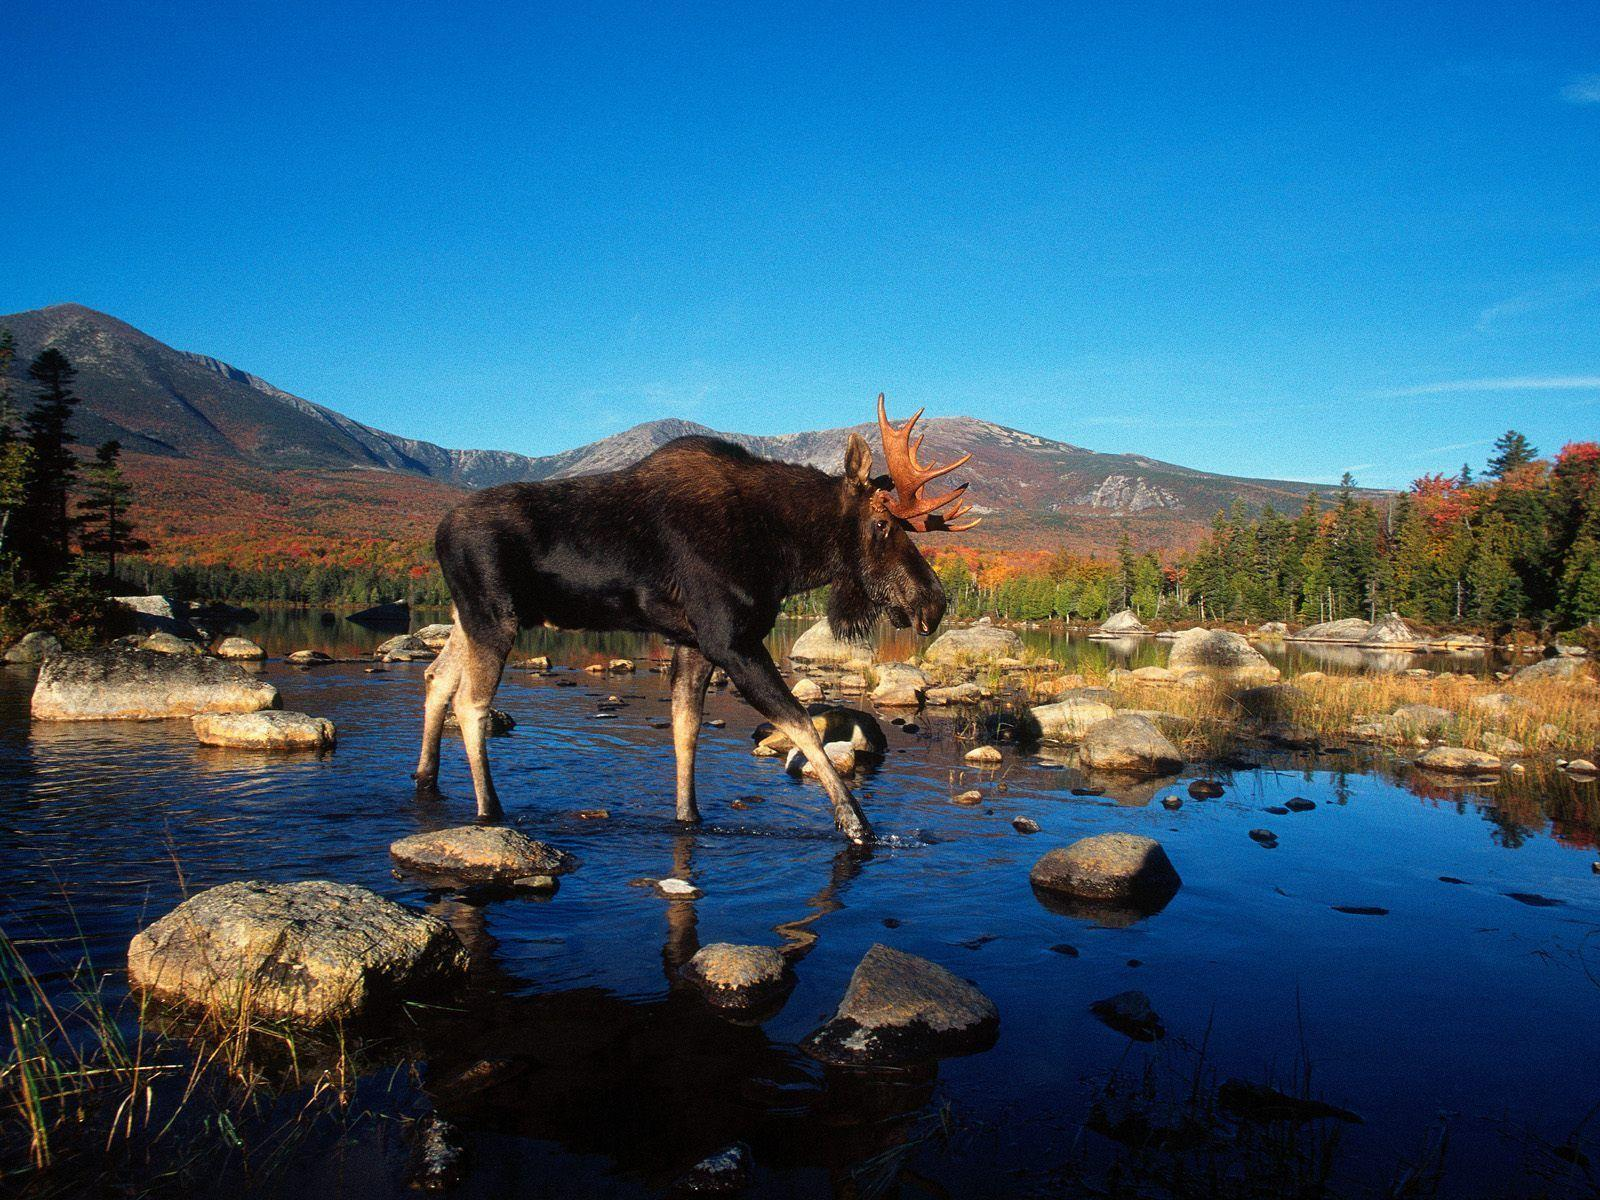 moose hd wallpaper - photo #8